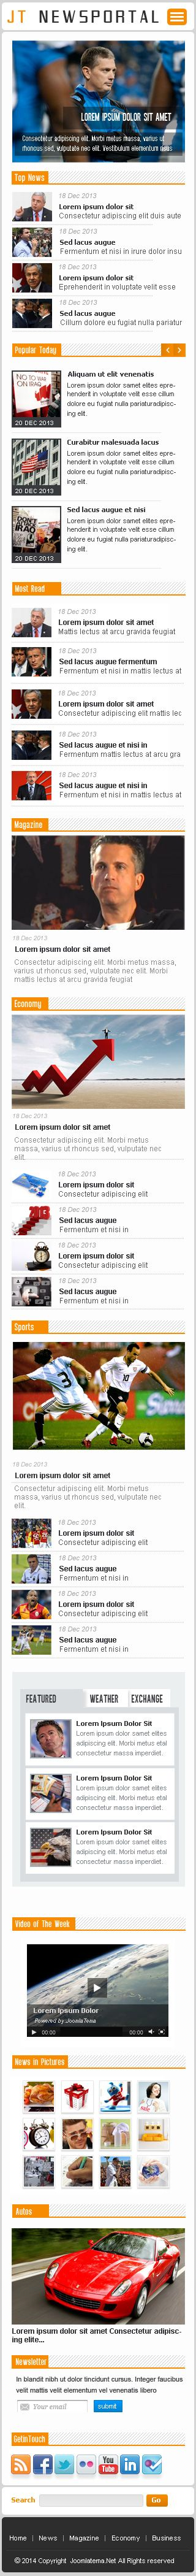 JT News Portal PSD Pack Screenshot 36